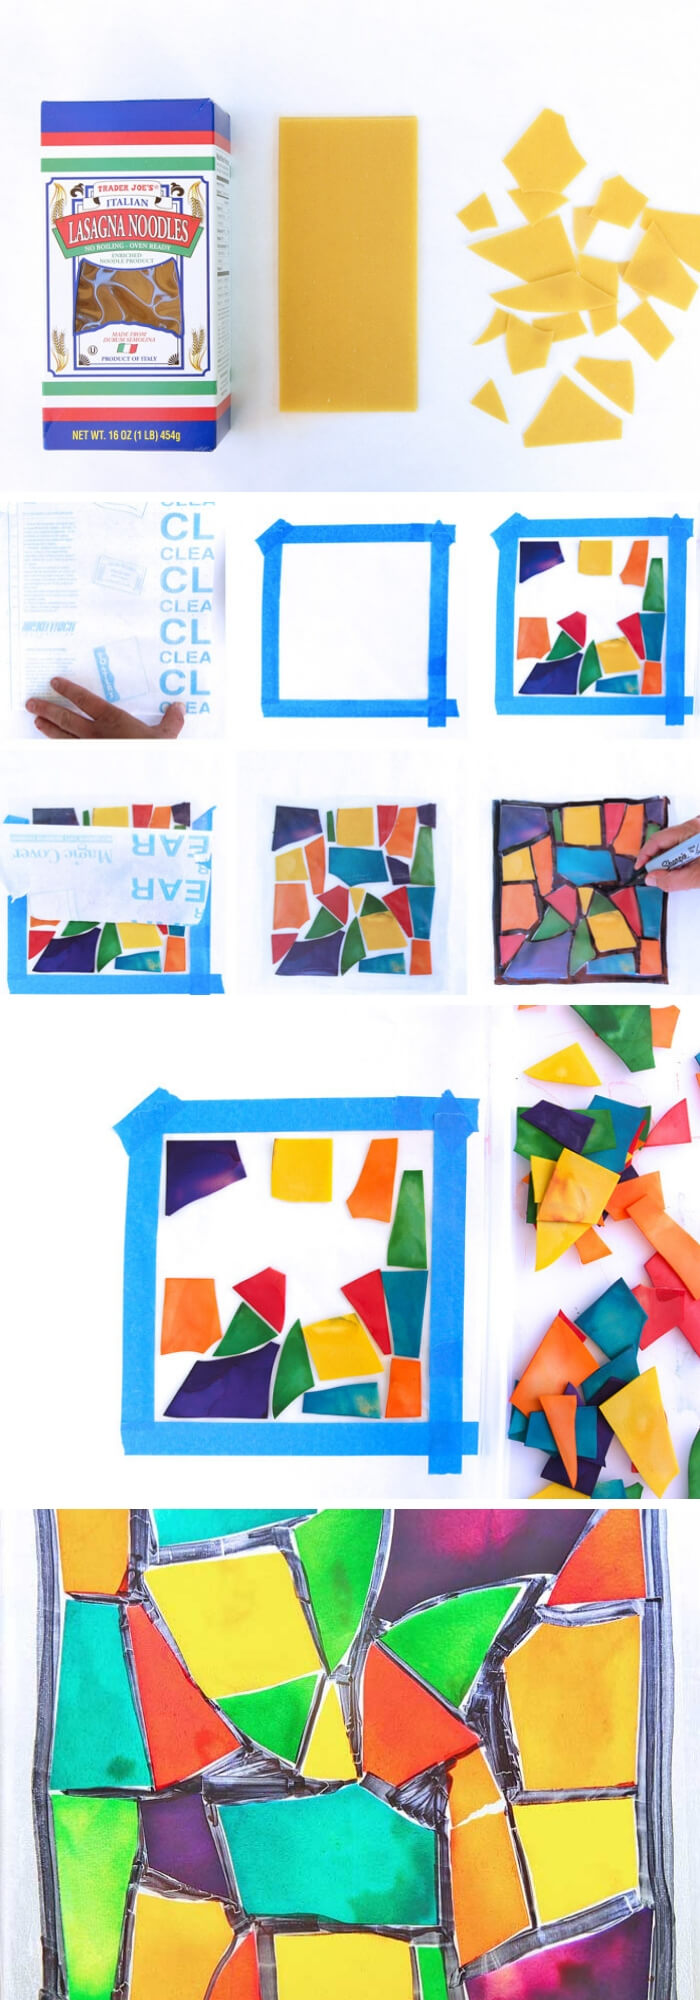 Children's Holiday Craft Ideas – Faux Stained Glass Valentine's Day Window Hangings   Pasta Crafts: Stained Glass Pasta